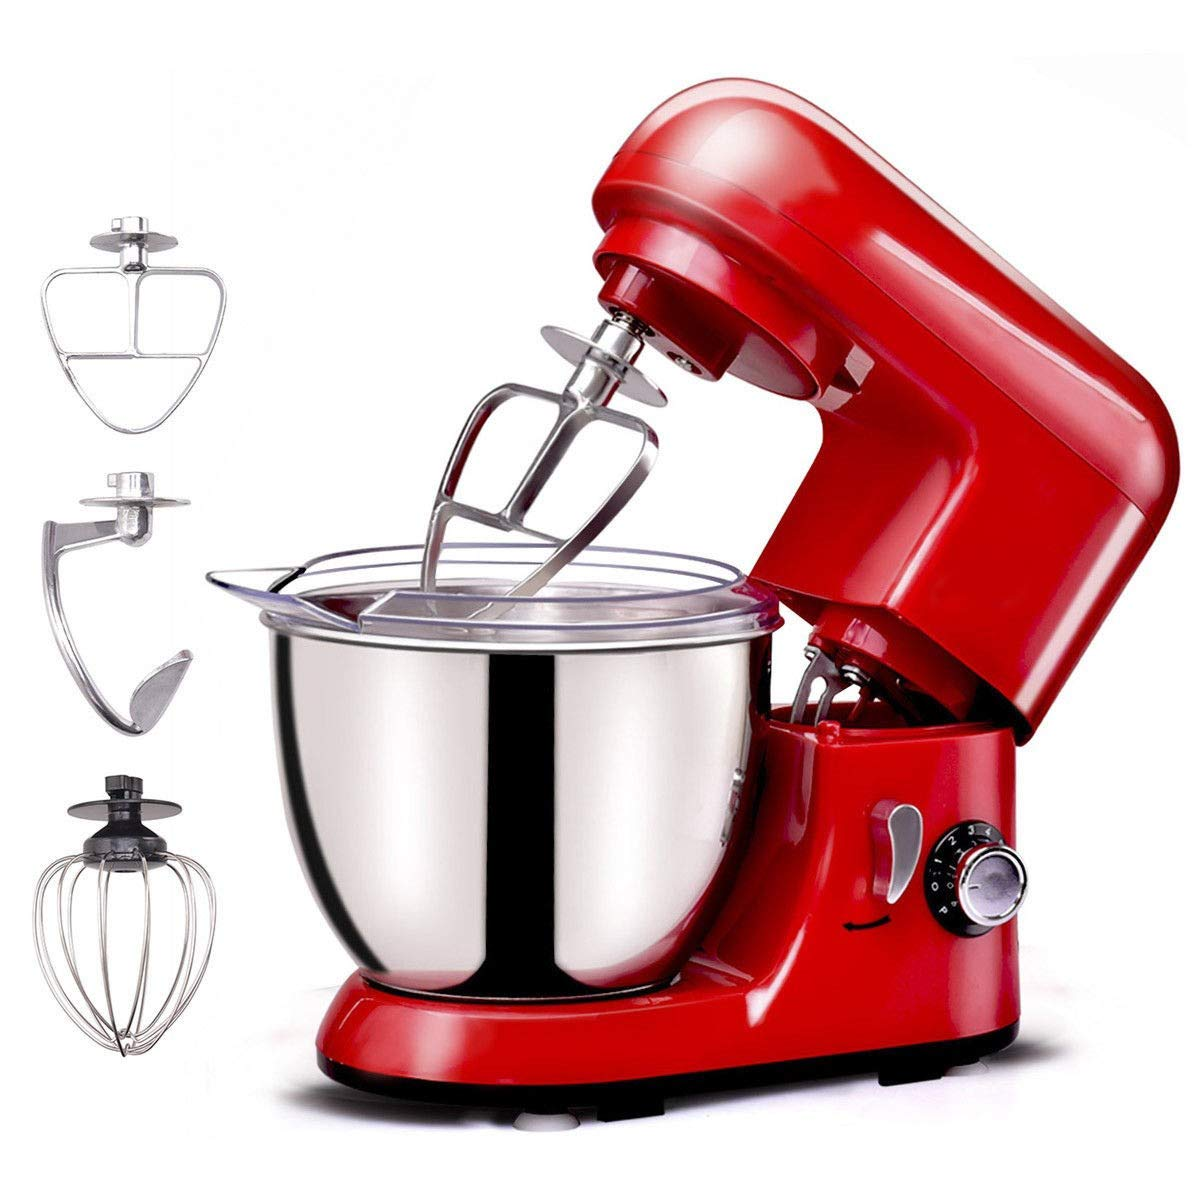 LHONE Electric Food Stand Mixer Tilt-head Stand Mixer 4.3Qt 6-Speed 120V/550W Electric Food Mixer w/Stainless Steel Bowl (Red)